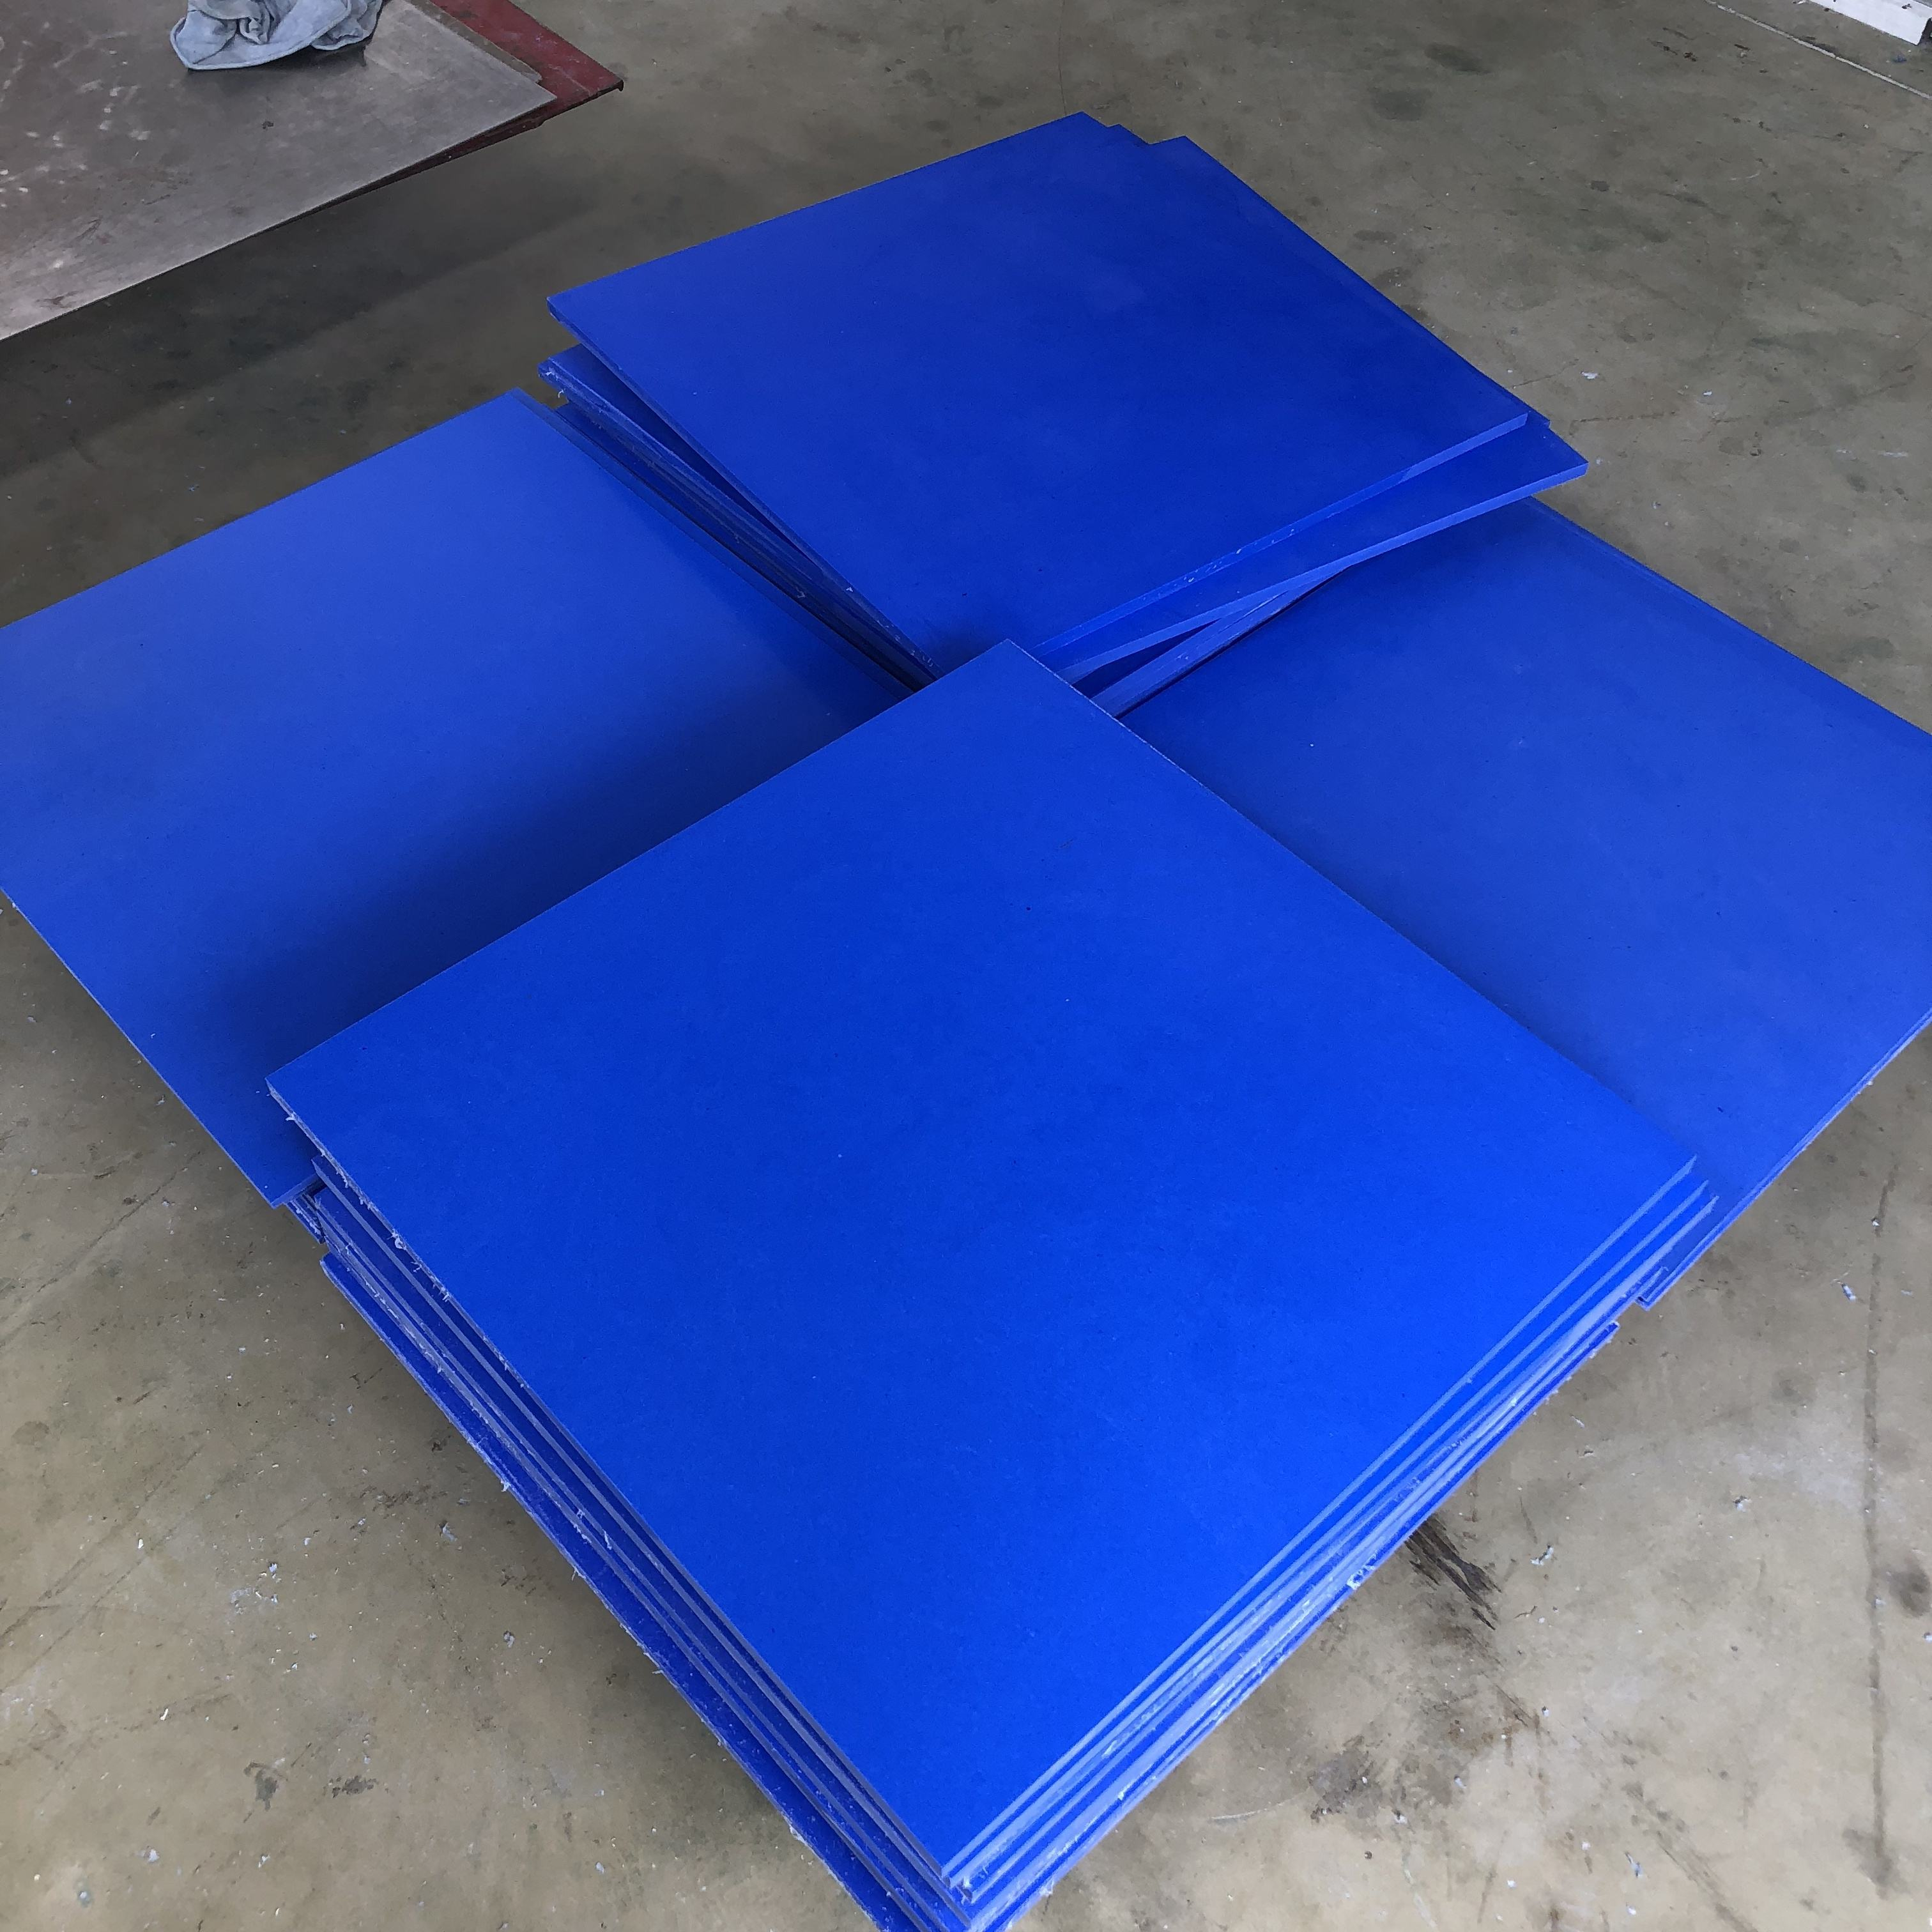 1mm 2mm 3mm 10mm 15mm Thick Factory Supplier Offer High Quality Blue PTFE Skived Sheet Square In Rolls Good Price